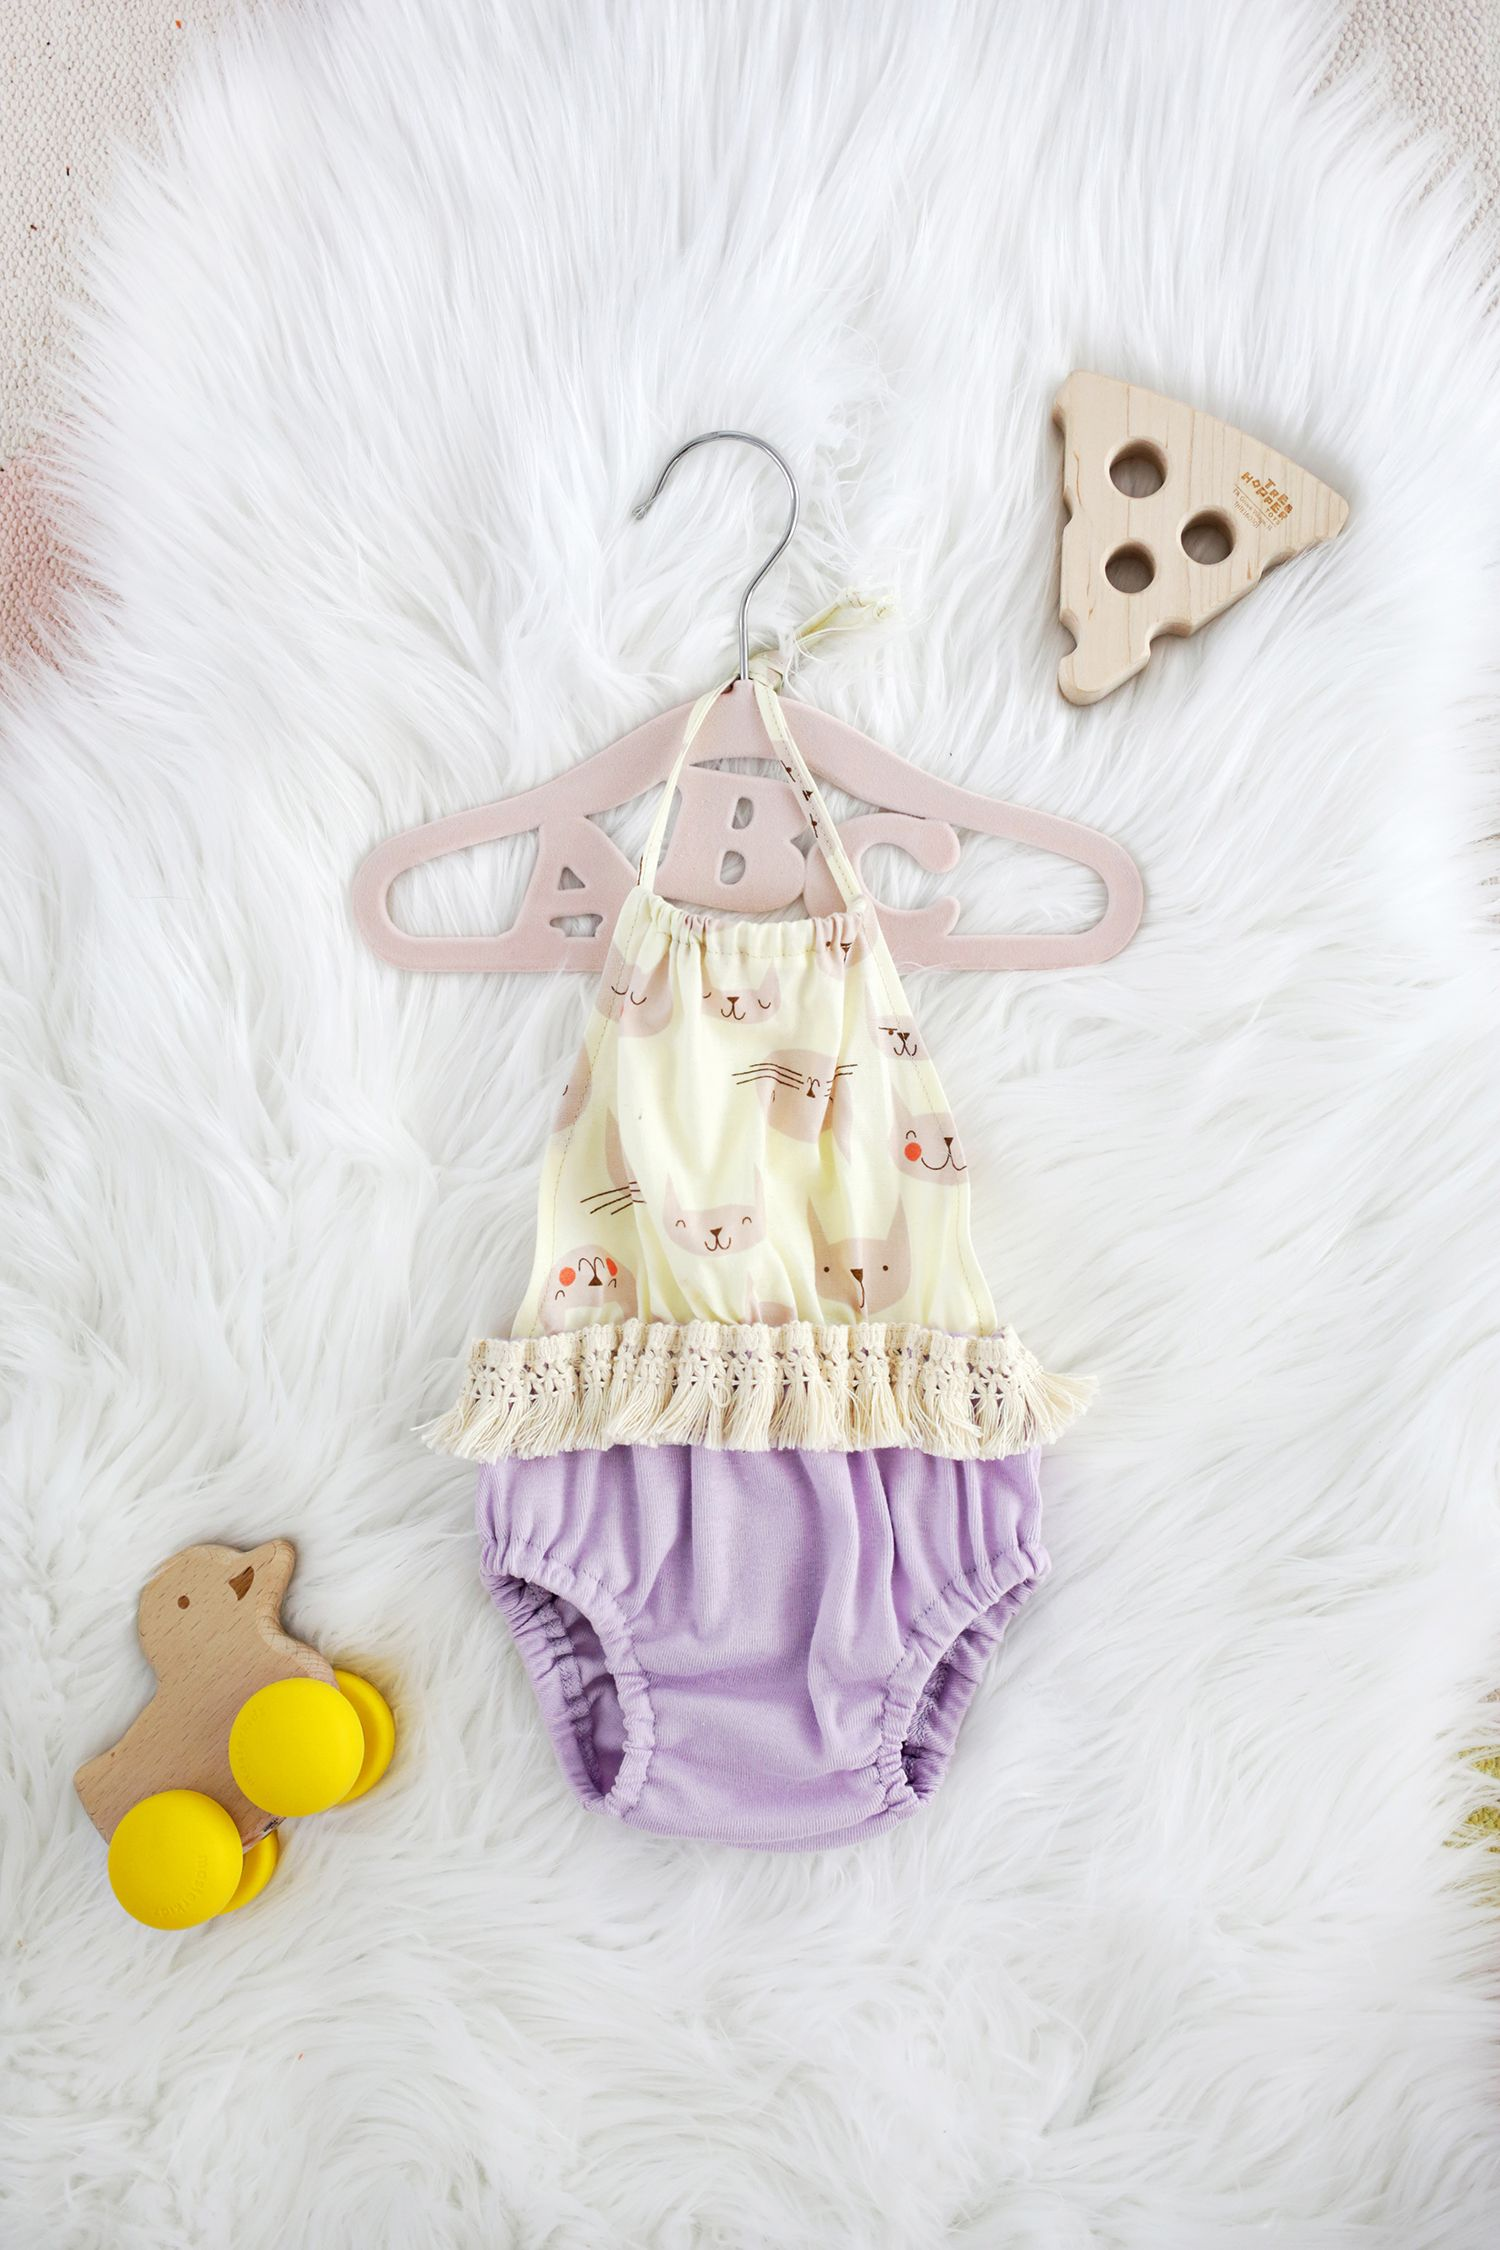 Baby Halter Top Romper DIY | Fabric Crafts, Sewing Tips, Sewing ...